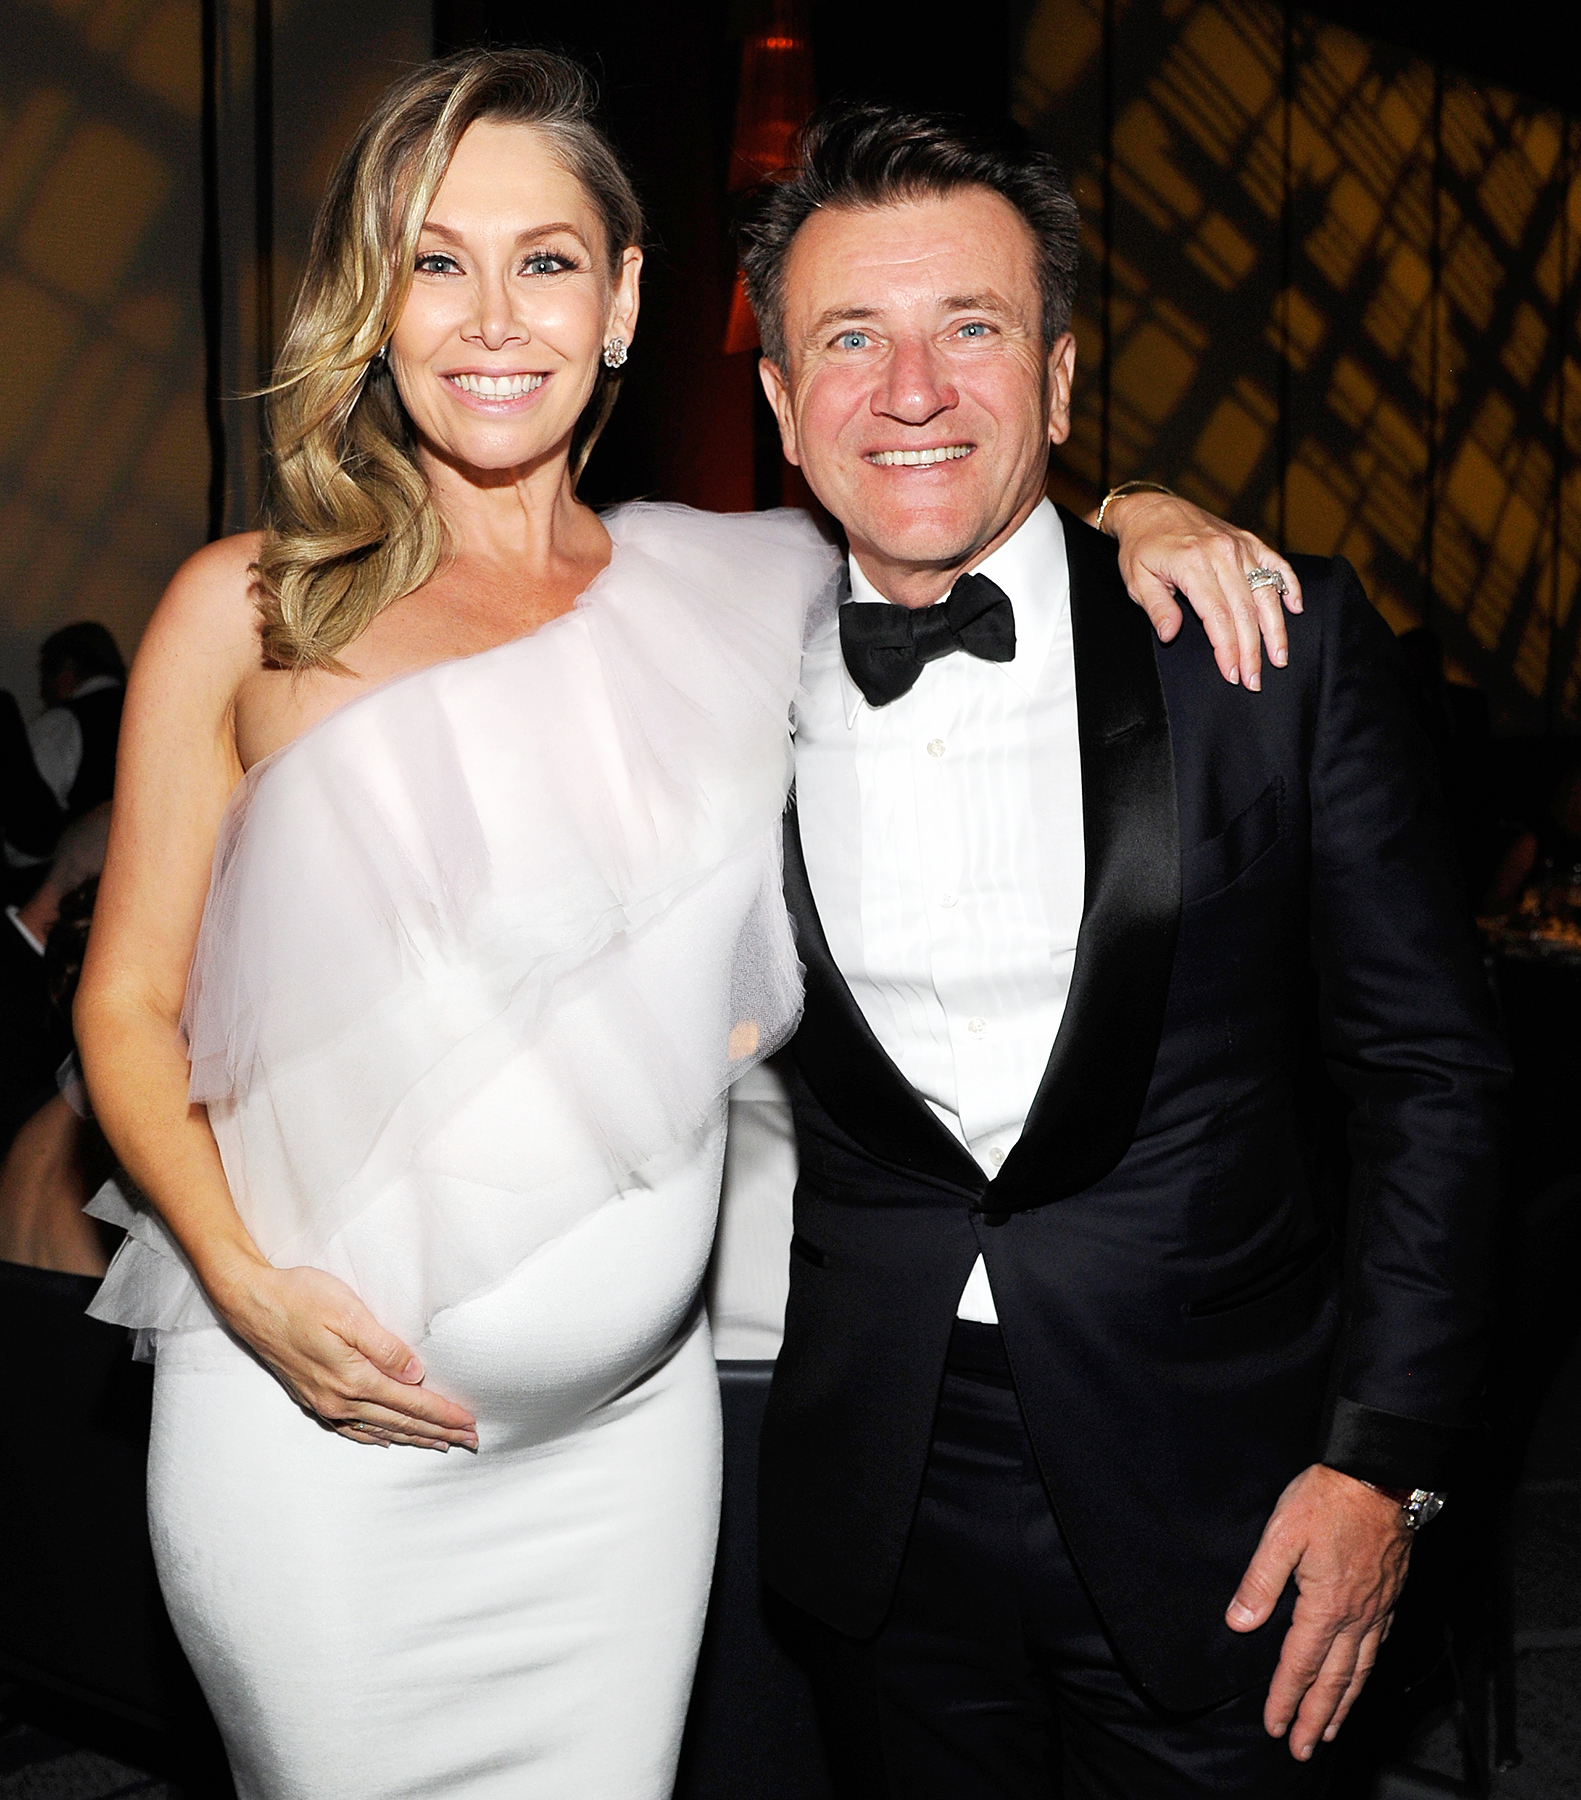 Kym Johnson Robert Herjavec 2018 G'Day USA Black Tie Gala